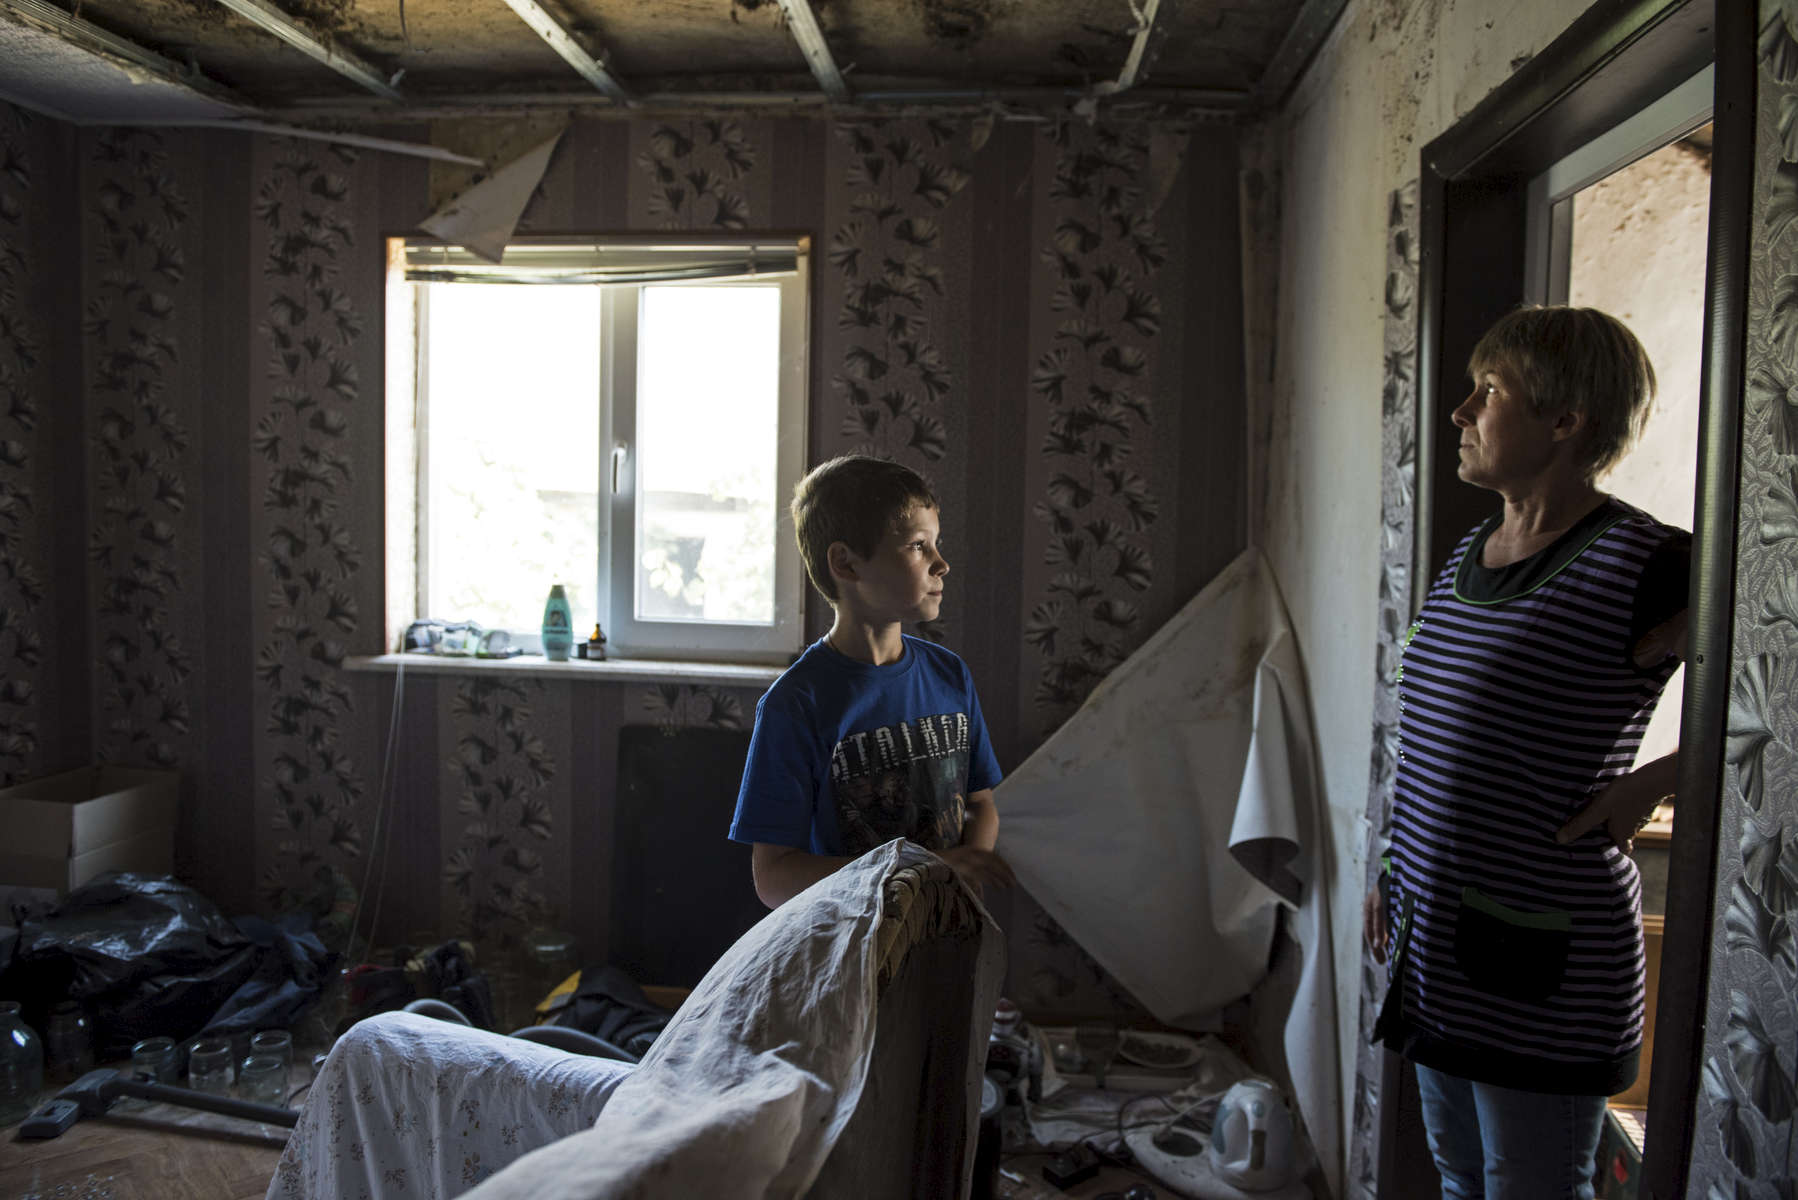 Oleg Teryokhin stands with his mother, Galina Teryokhina, in their home in Nikishino village, destroyed by the east Ukraine war, September 27, 2015, in DNR territory.  Nikishino village was far from the sites of early skirmishing and neither side bothered trying to control this small village until it turned out it was on the path of a major Ukrainian offensive begun in July with the goal of encircling Donetsk city, the provincial capital. Using long-range artillery and spotter aircraft to target it, the Ukrainian army was pushing separatists back from one town after another. Galina Teryokhina, Oleg's mother, said residents didn't take the war seriously until mid July, 2014. Oleg was playing outside in the afternoon when loud explosions were heard in the sky. Later, some papers with English writing and bits of charred clothes fluttered through the village, and Oleg picked some up. Nikishino village was at the edge of the debris field of the Malaysia Airlines Flight 17, likely shot down by rebels who mistook it for a Ukrainian spotter aircraft.